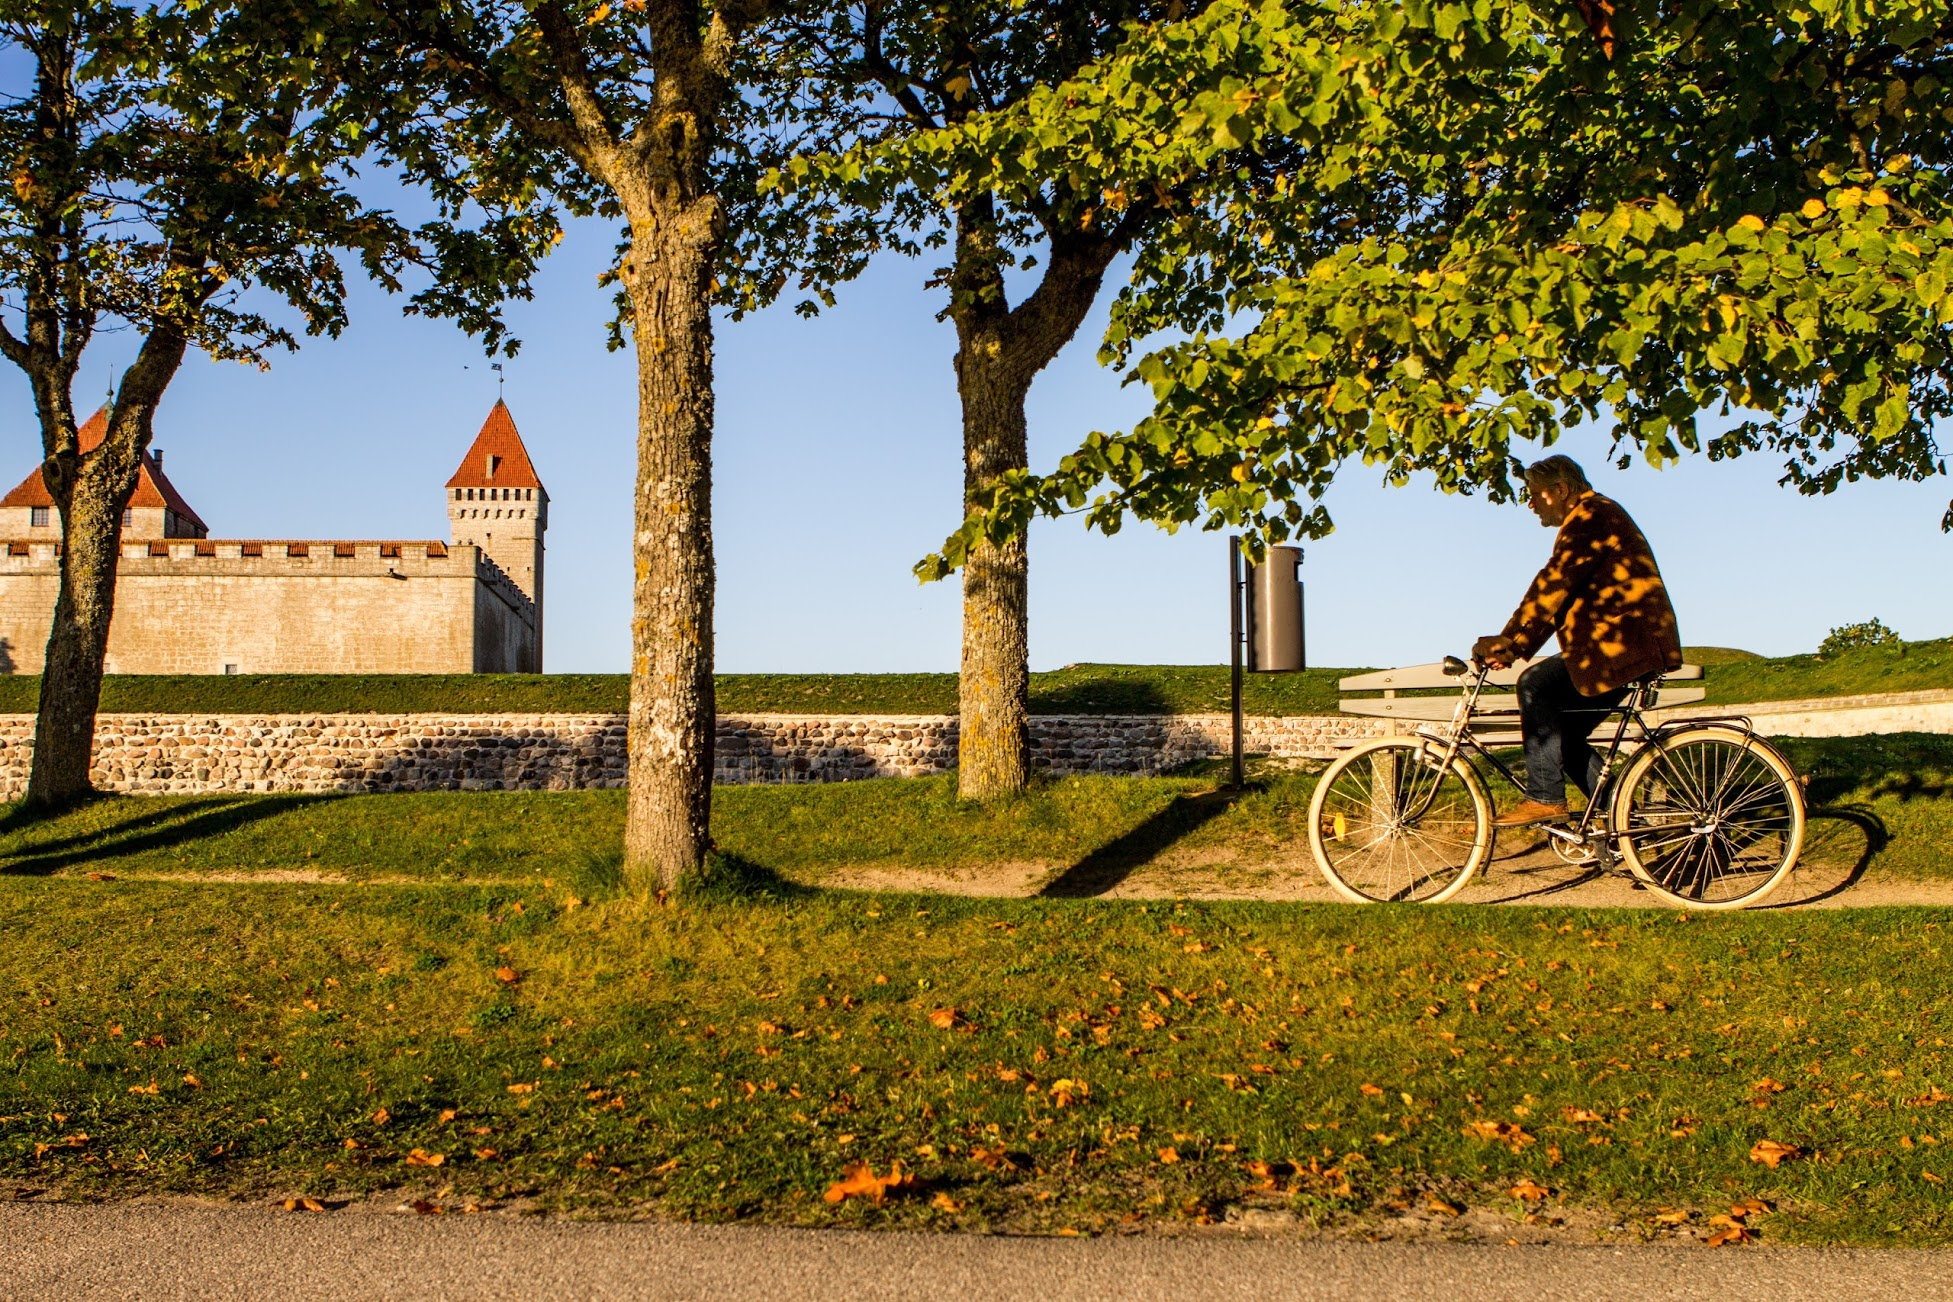 Cycling in Saaremaa is popular. It is convenient to discover the city and the island by bike.